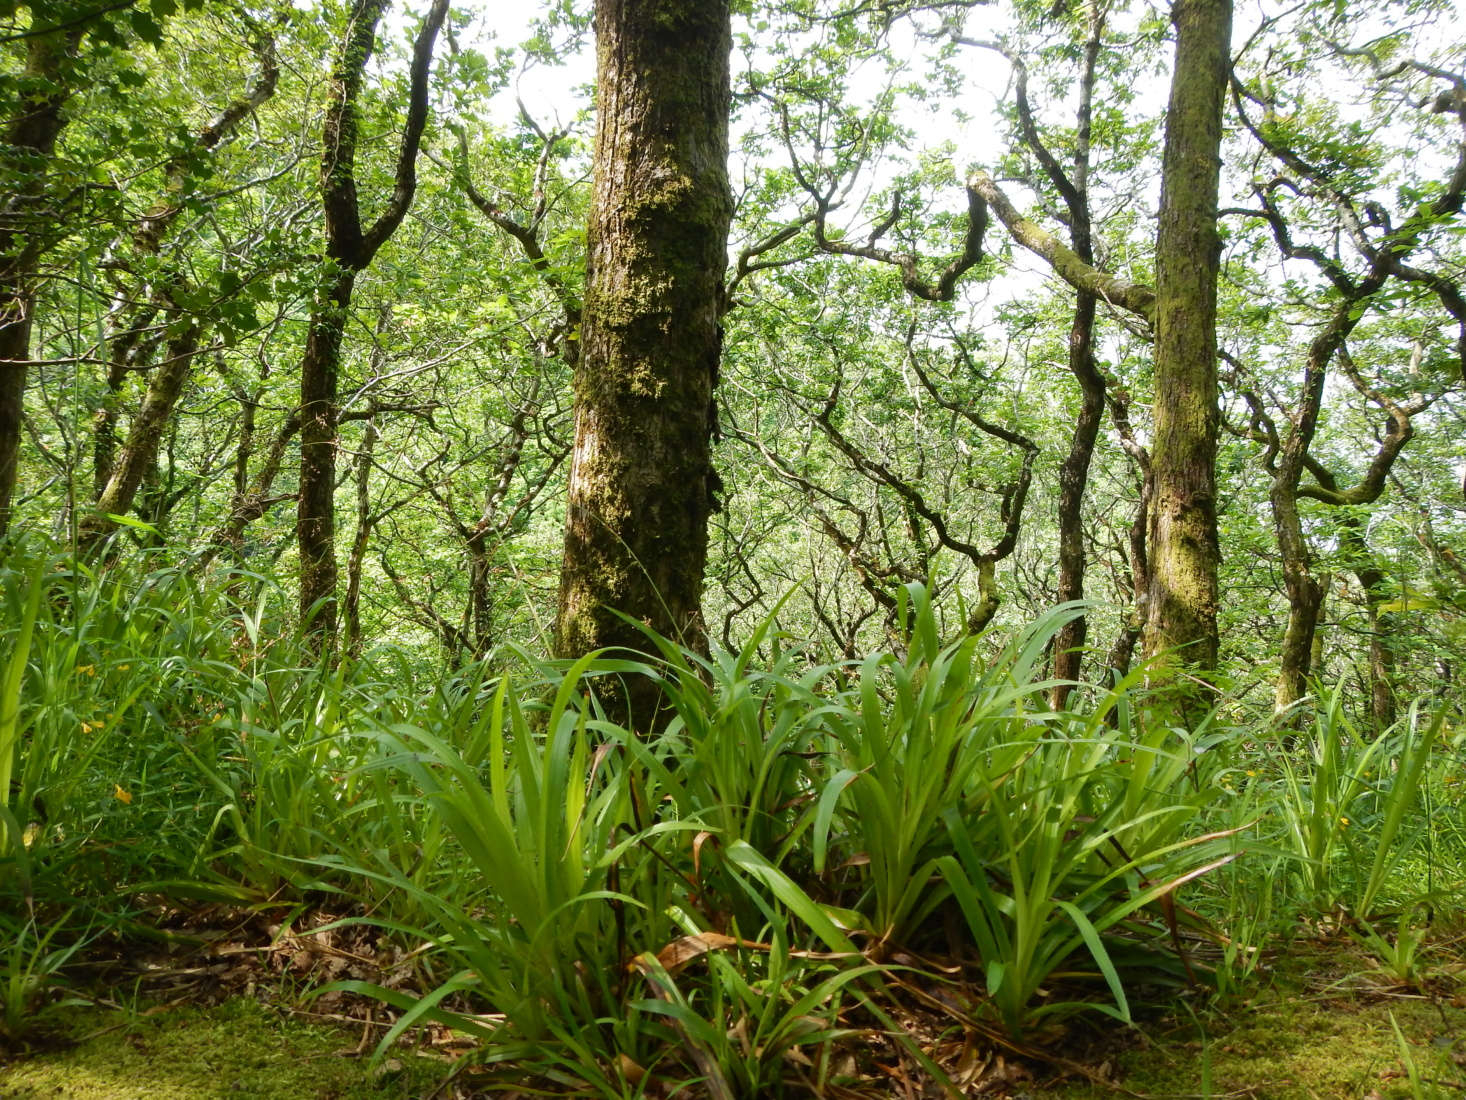 L. sylvatica grows at the base of oak trees in the UK. Photograph by Matt Lavin via Flickr.